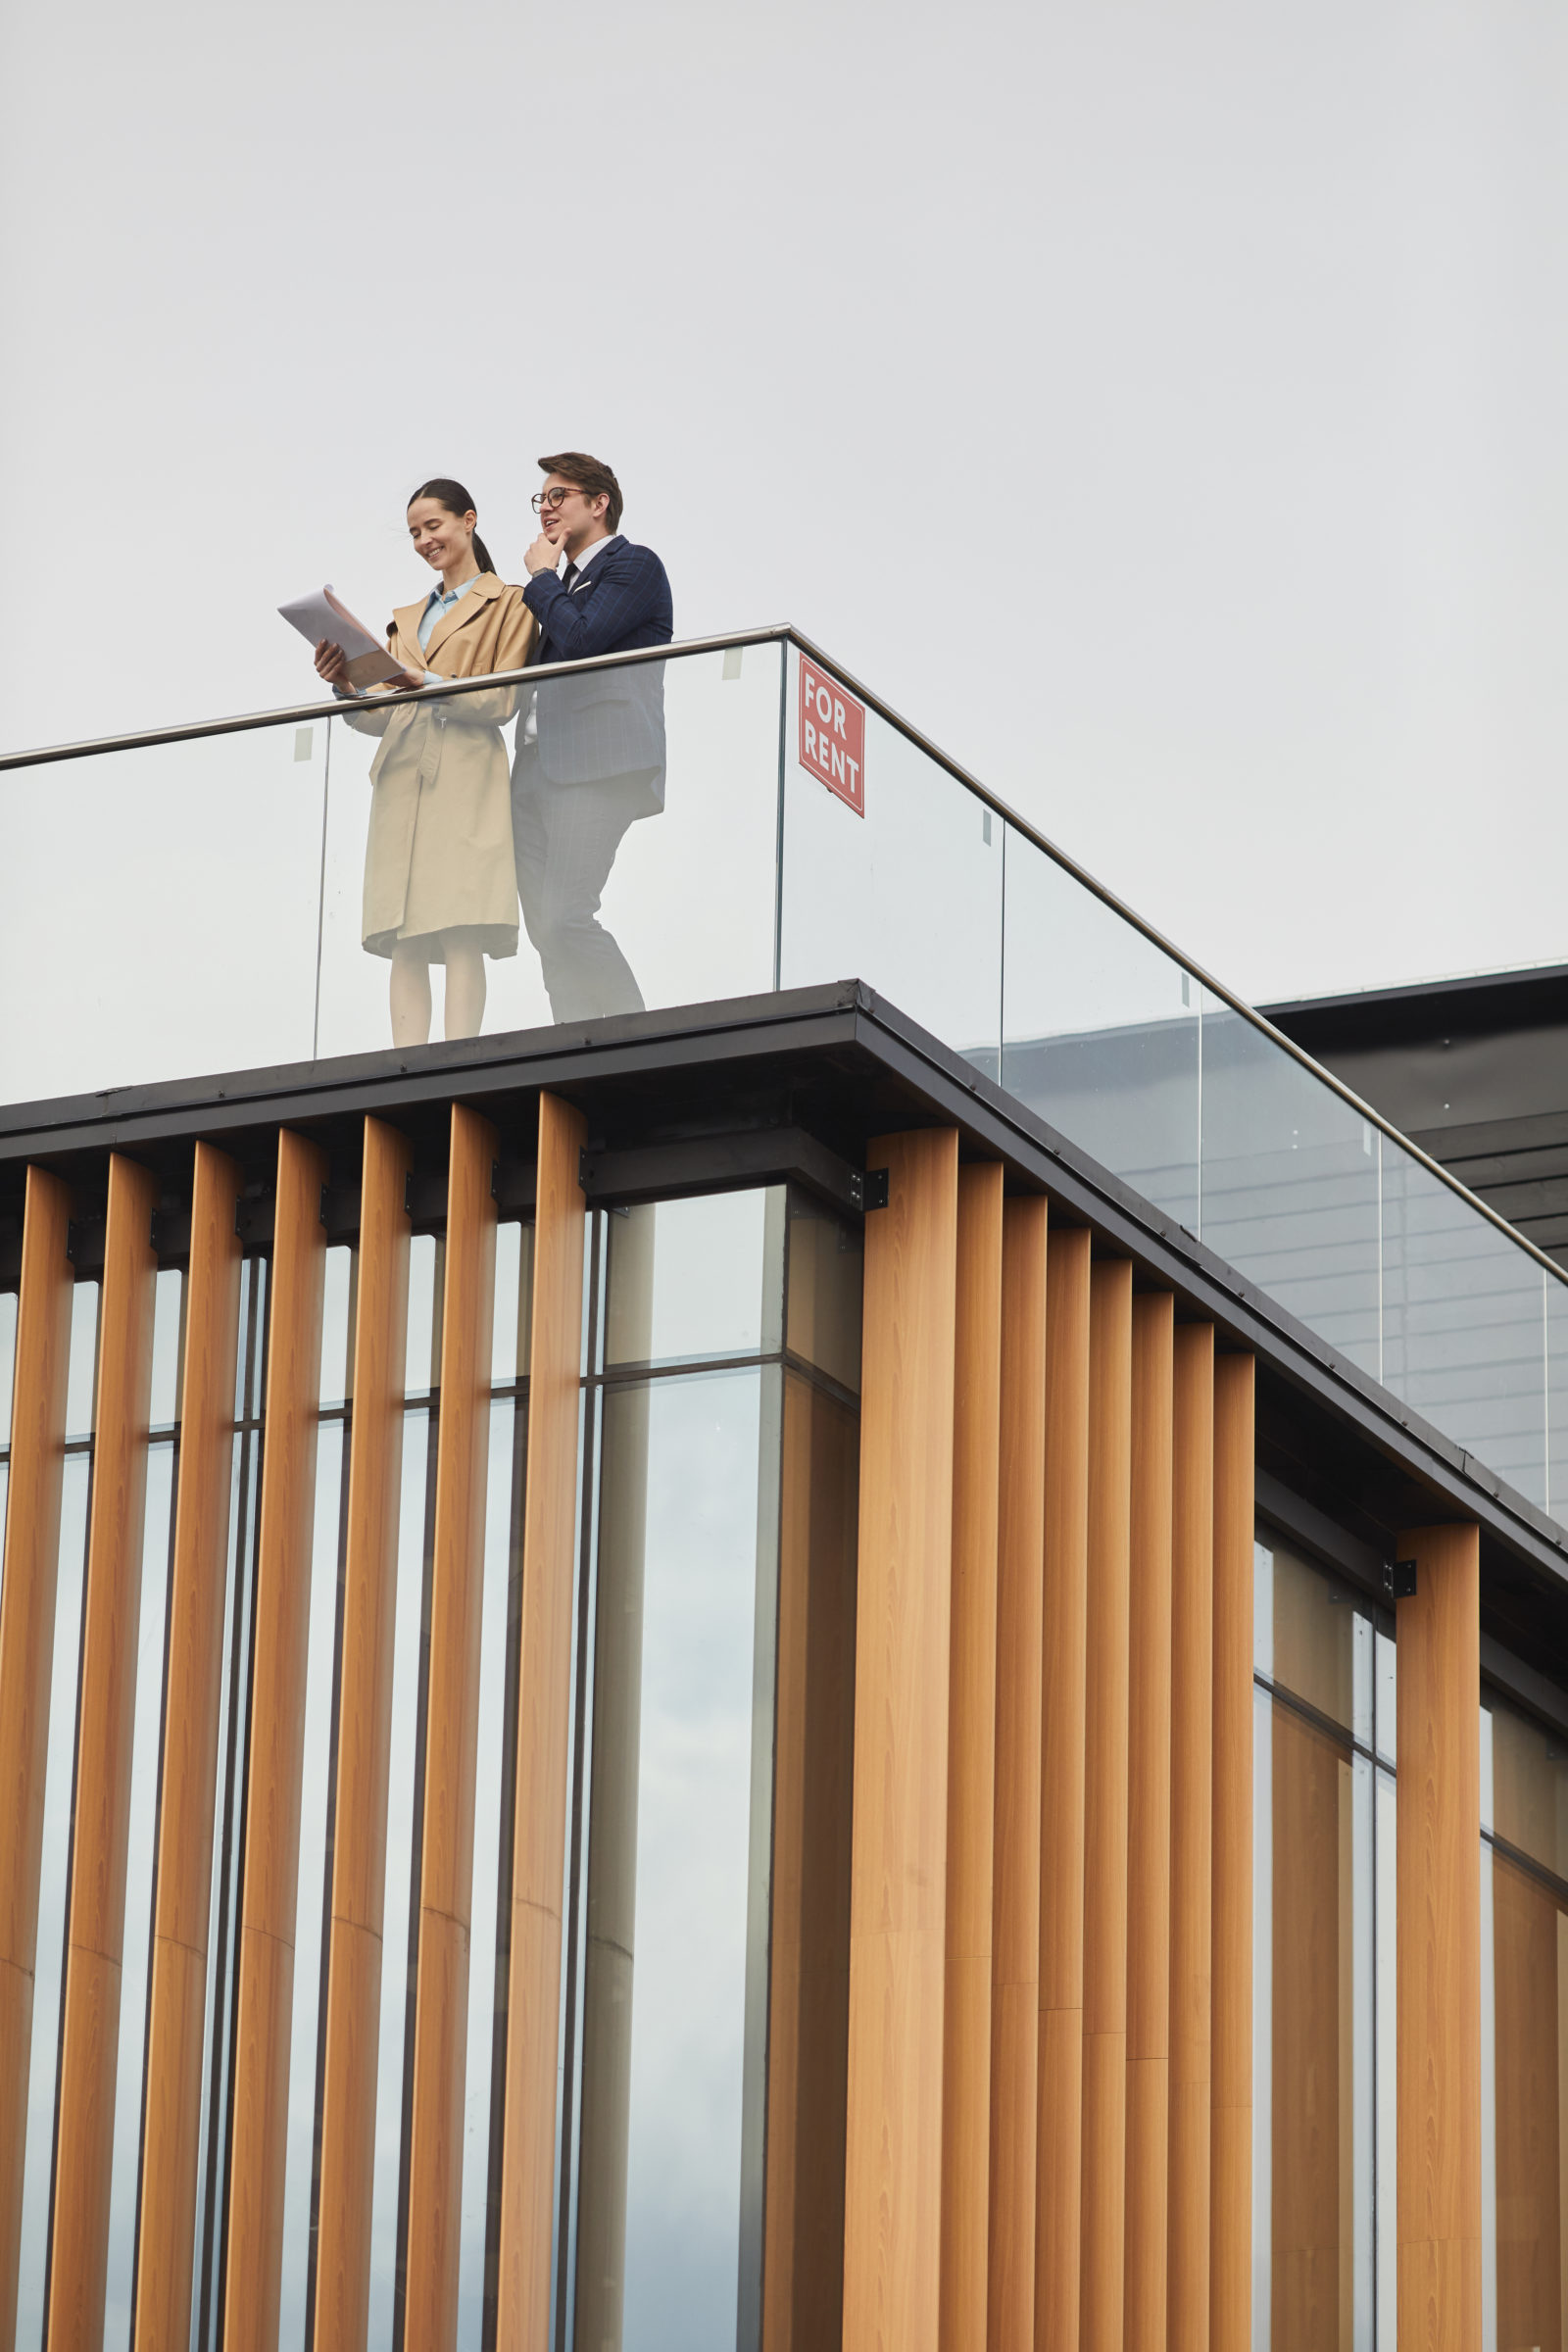 two real estate agents standing on roof XEUEX3T